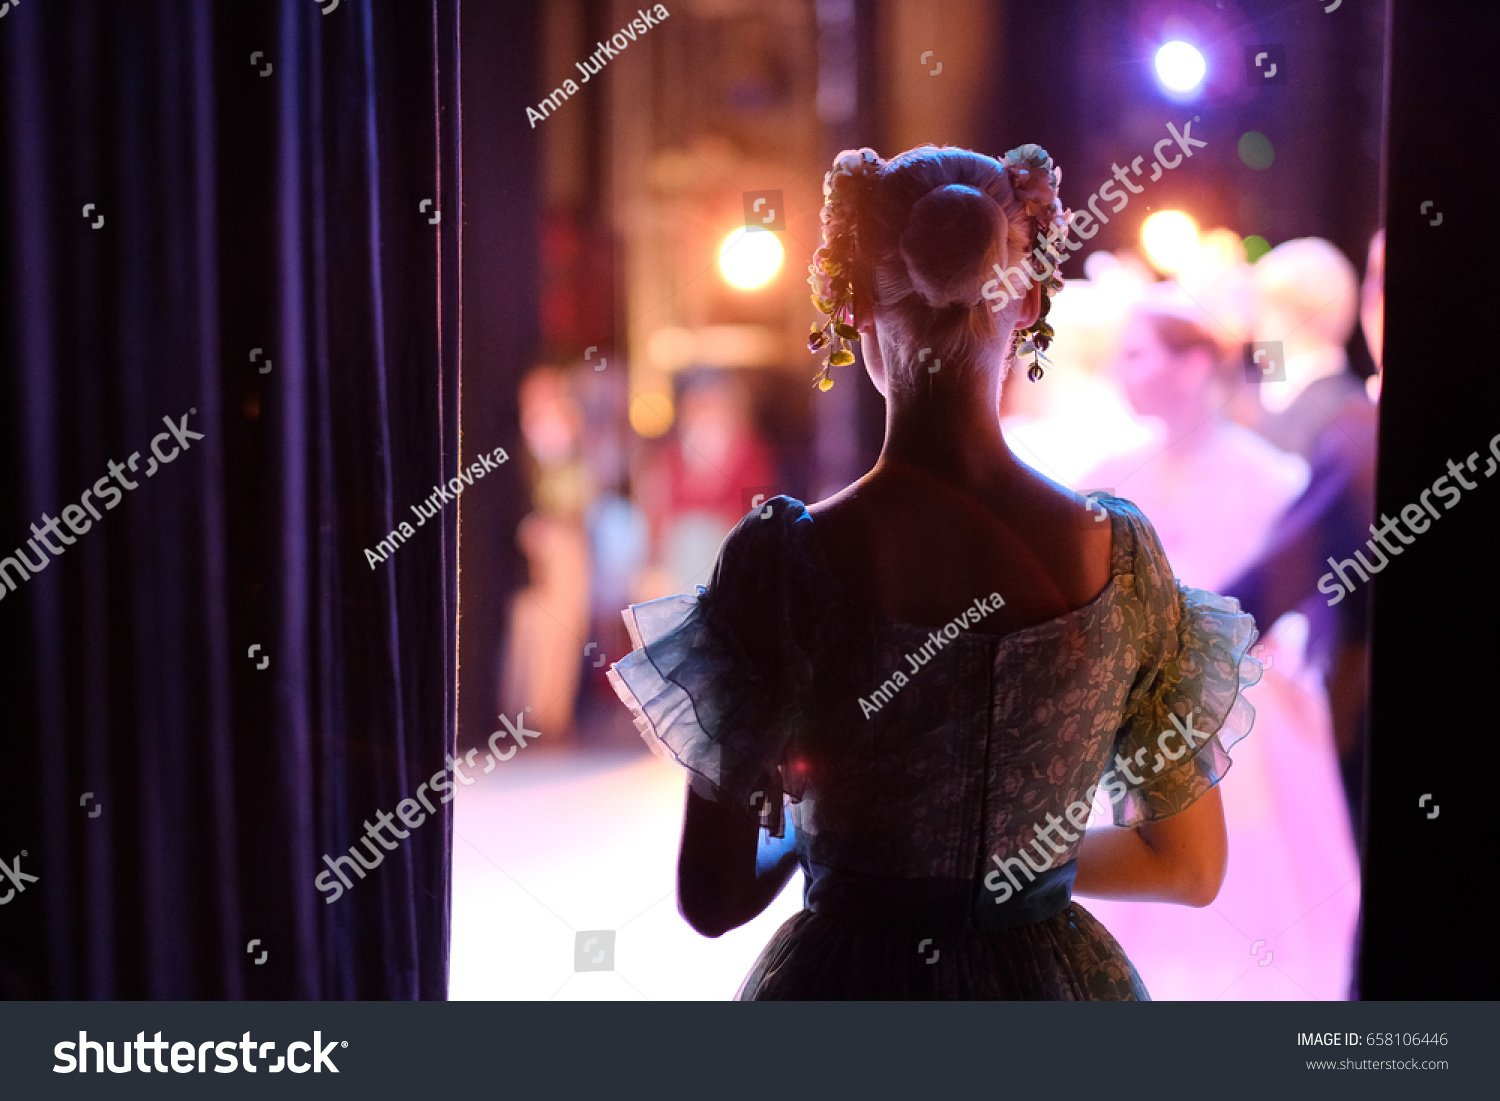 A ballerina awaiting the moment of entering the stage in the play #658106446